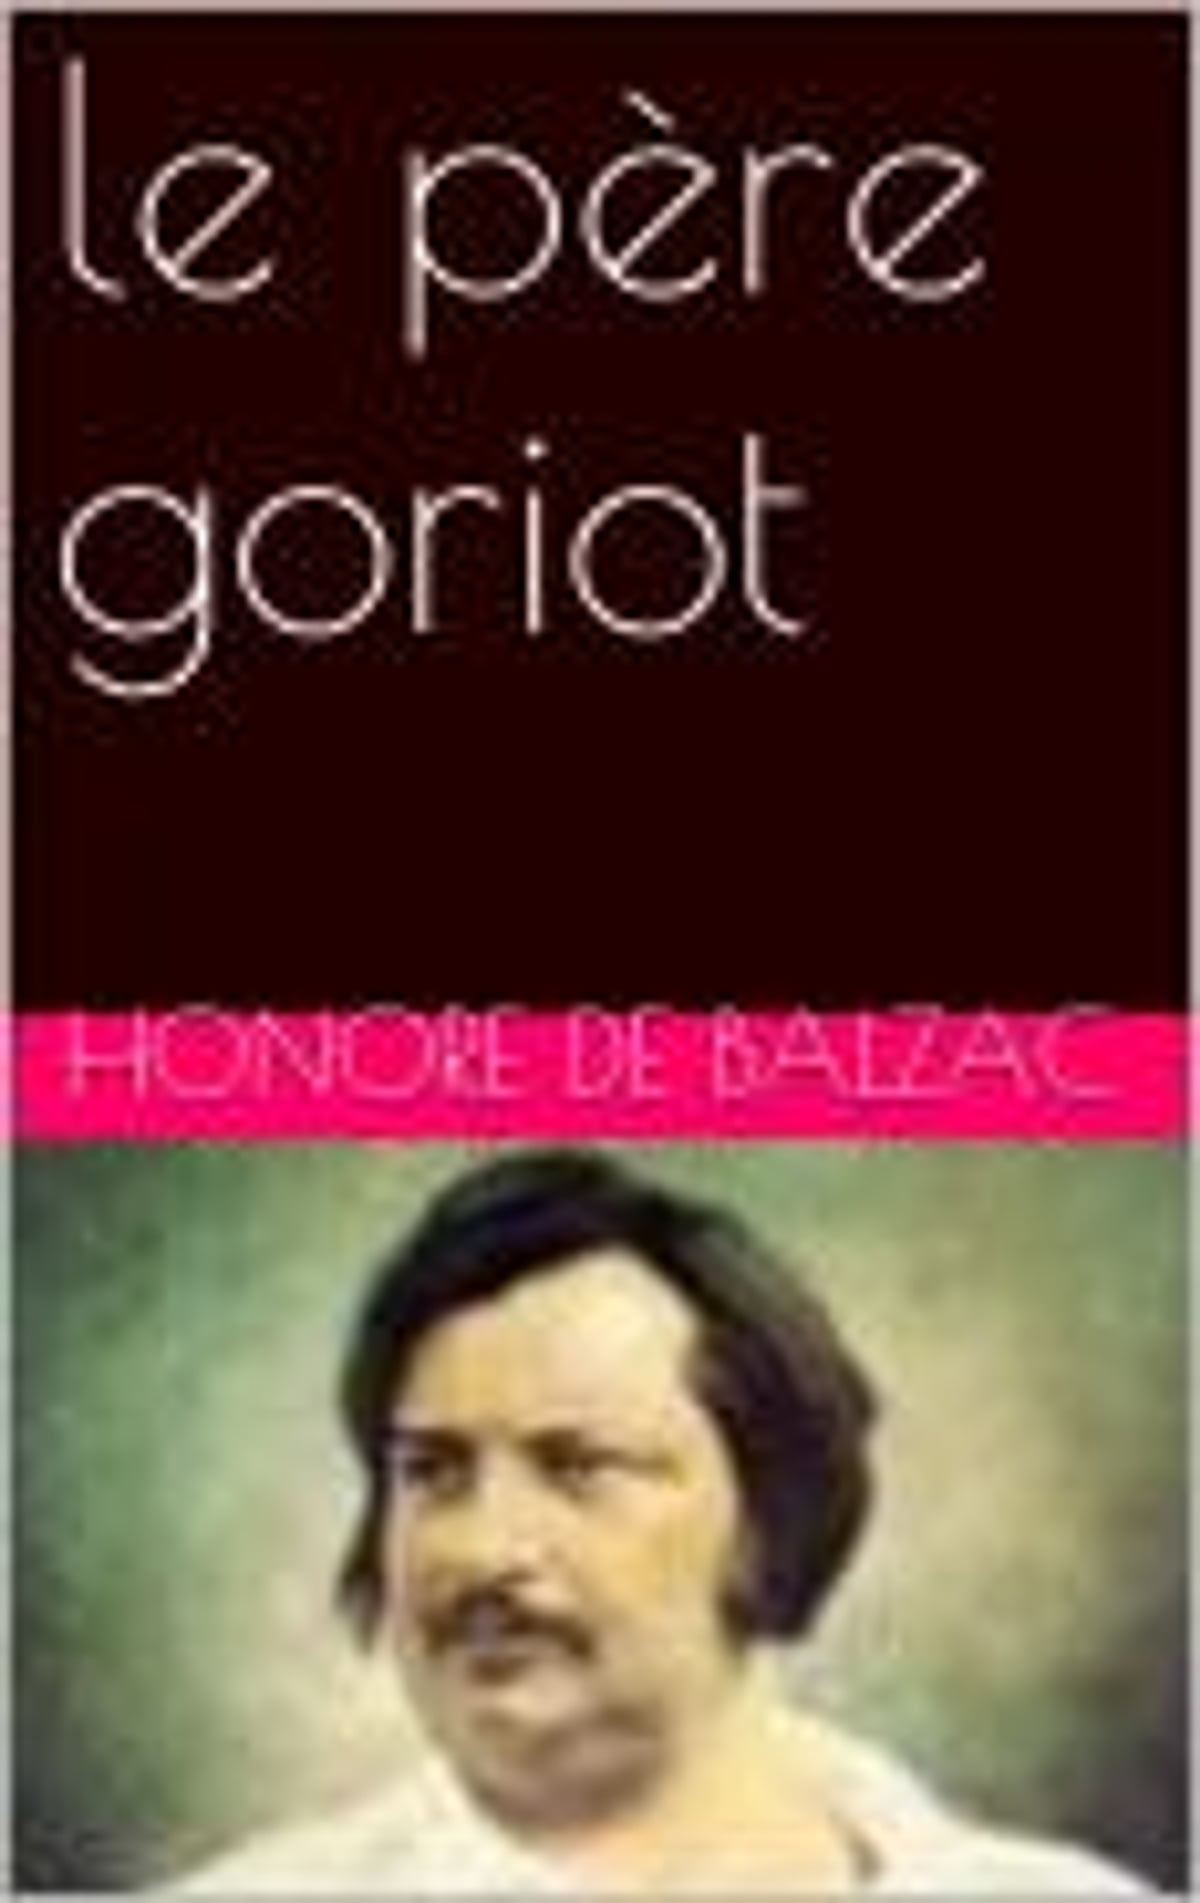 """essays on pere goriot Pere goriot essay dissertation help get started """"discuss balzac's classic description of the boardinghouse what feeling does he try to convey write an essay (with introduction and conclusion) answering the question  general essays, case studies, coursework, dissertations, editing, research papers, and research proposals."""